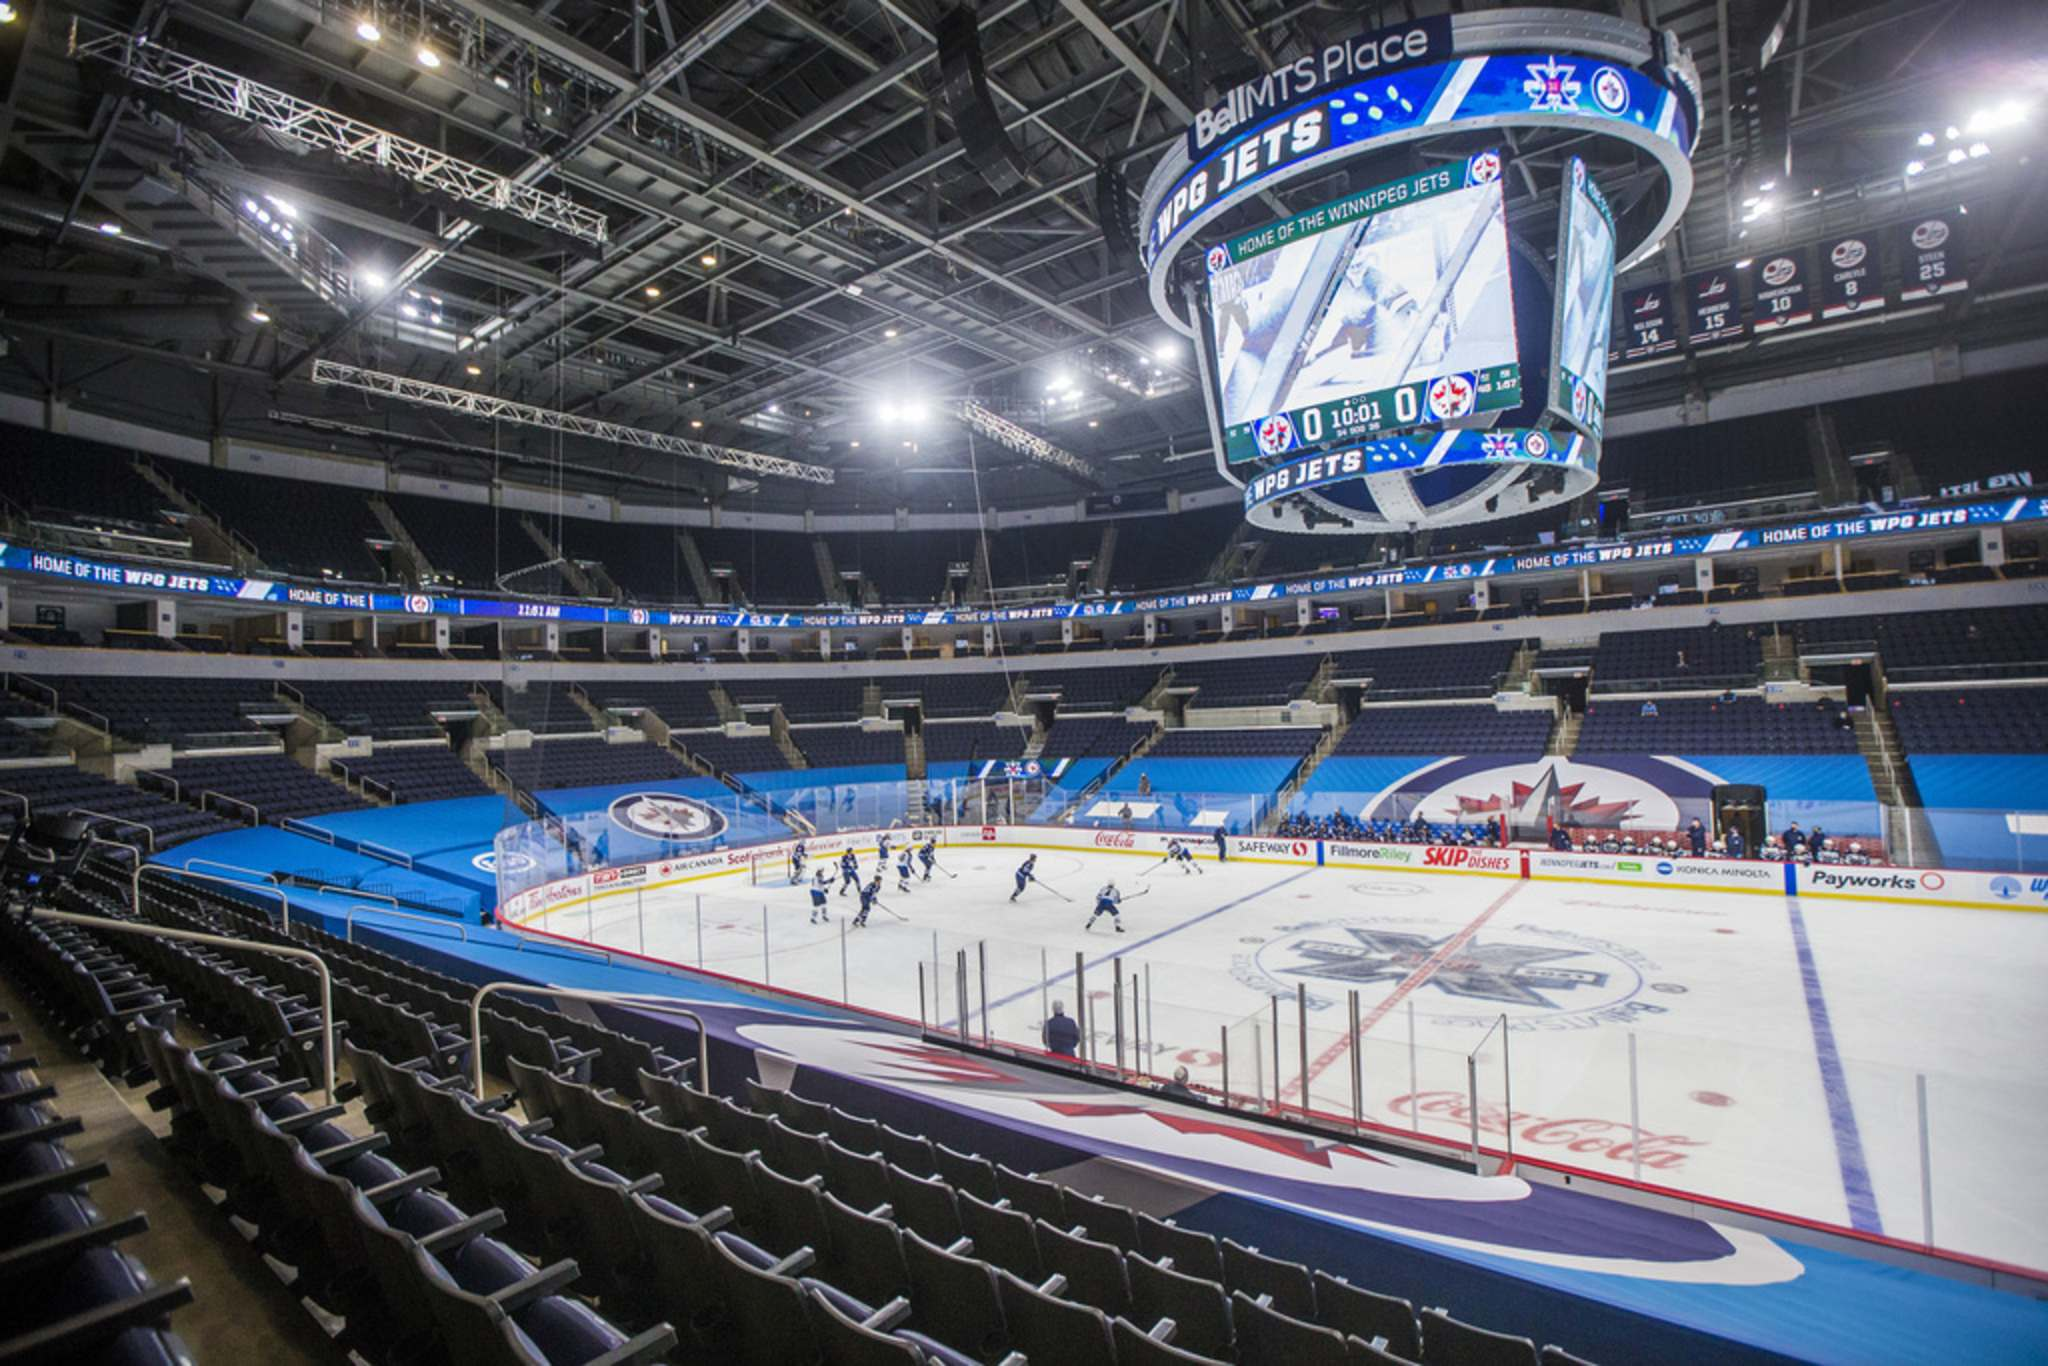 MIKAELA MACKENZIE / WINNIPEG FREE PRESS</p><p>The Winnipeg Jets held a scrimmage in an empty BellMTS Place, Monday. The arena appeared much as it will for Jets homegames this season – with no fans in attendance.</p>